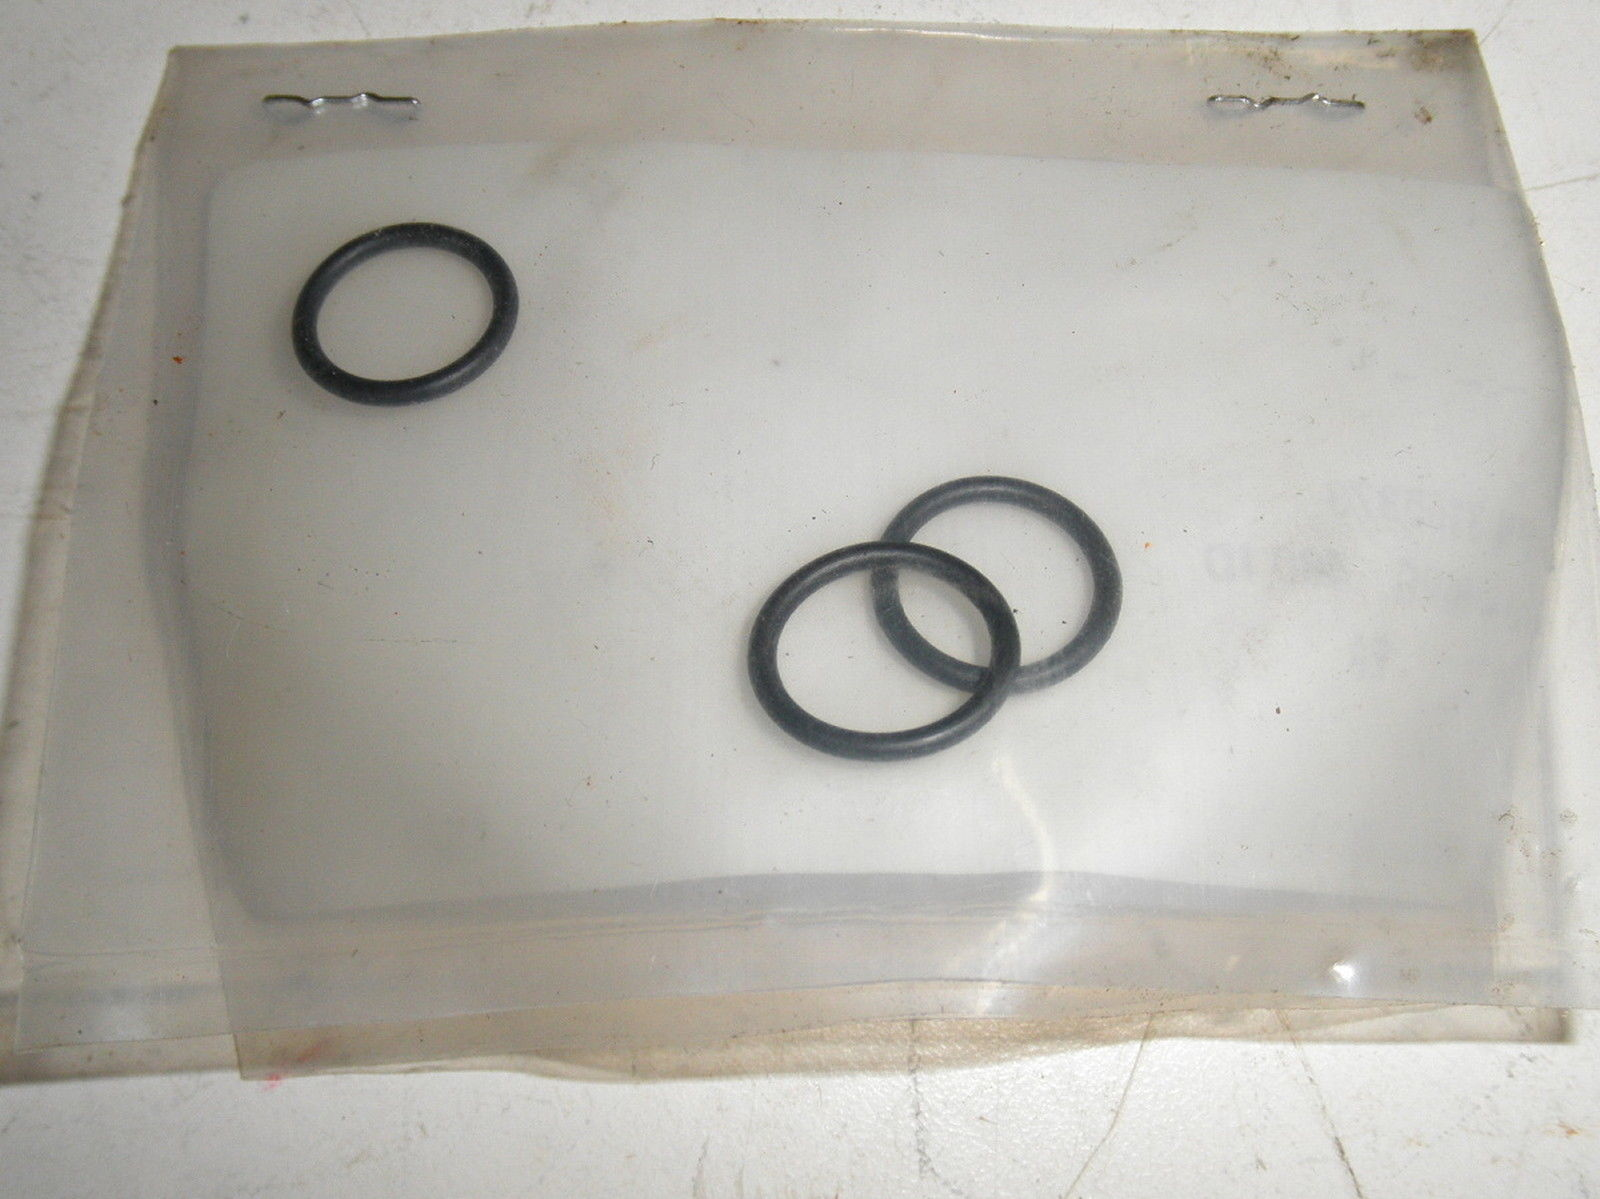 Pack of 3 Spindle O- Ring Oshkosh 3165373  5331-01-523-4263